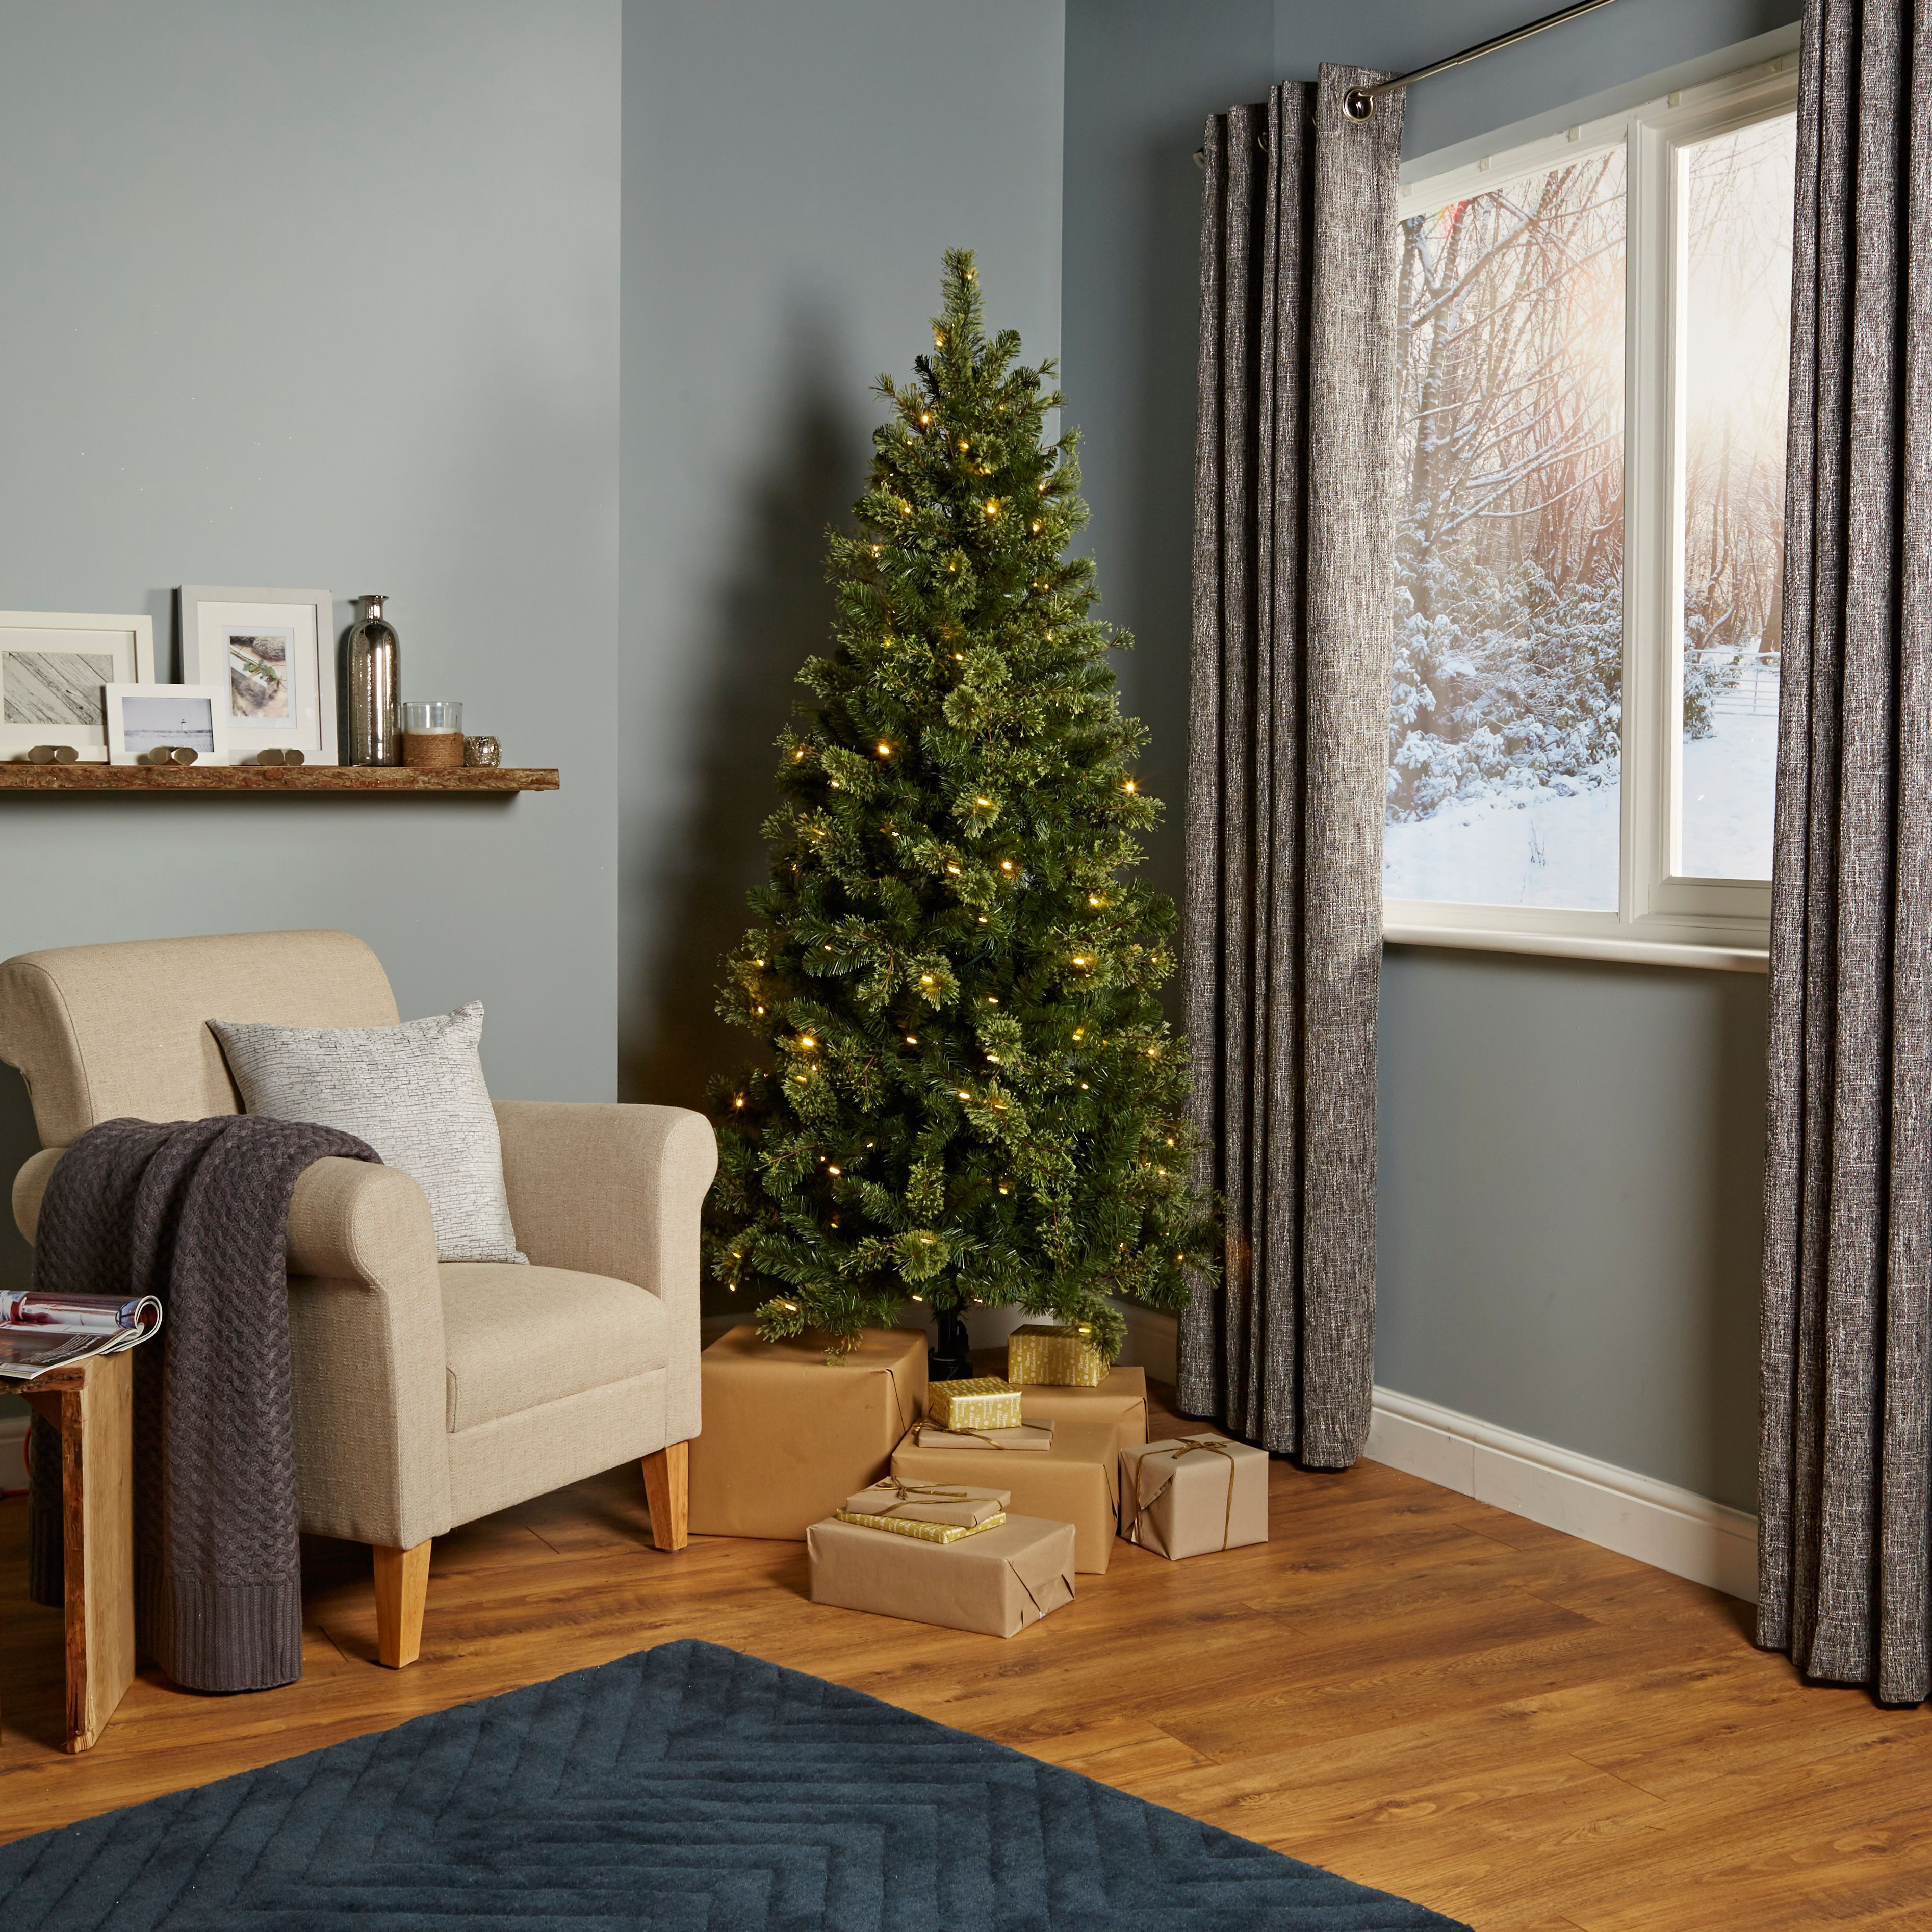 6ft 6in pemberton pre lit christmas tree - Classic Christmas Tree